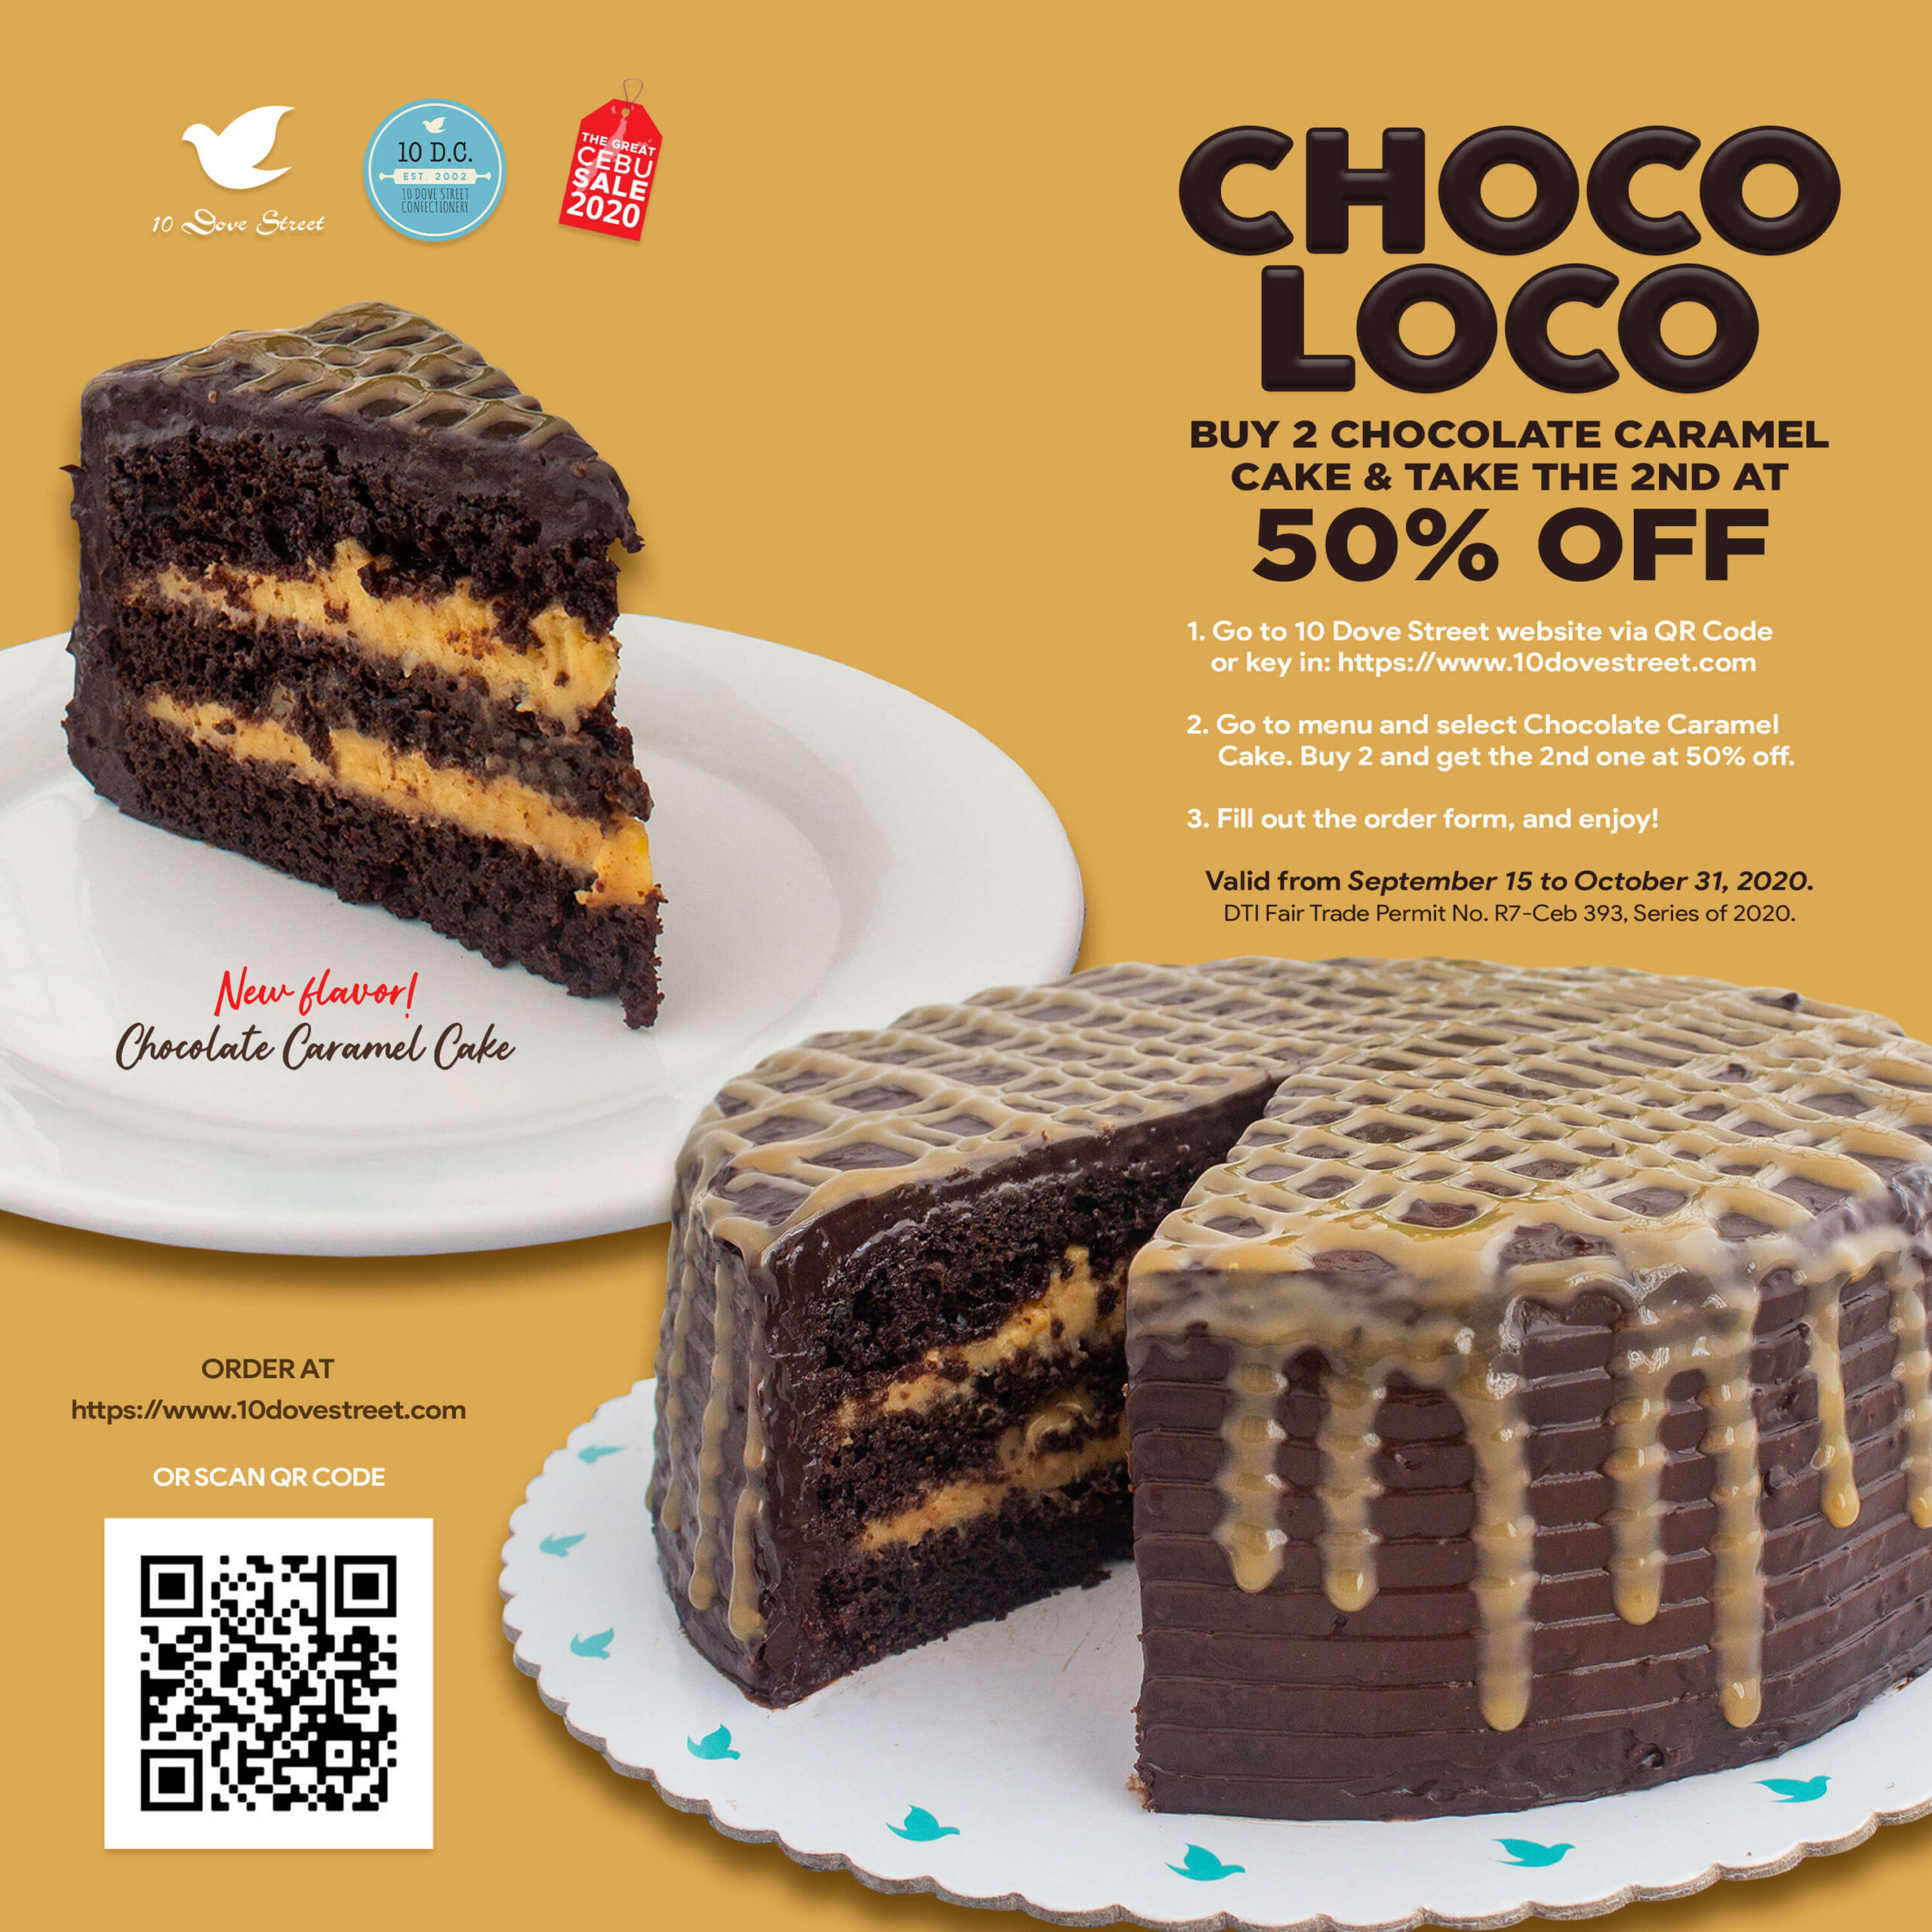 10 Dove Street offers buy 1 cake, get 2nd one at 50% off